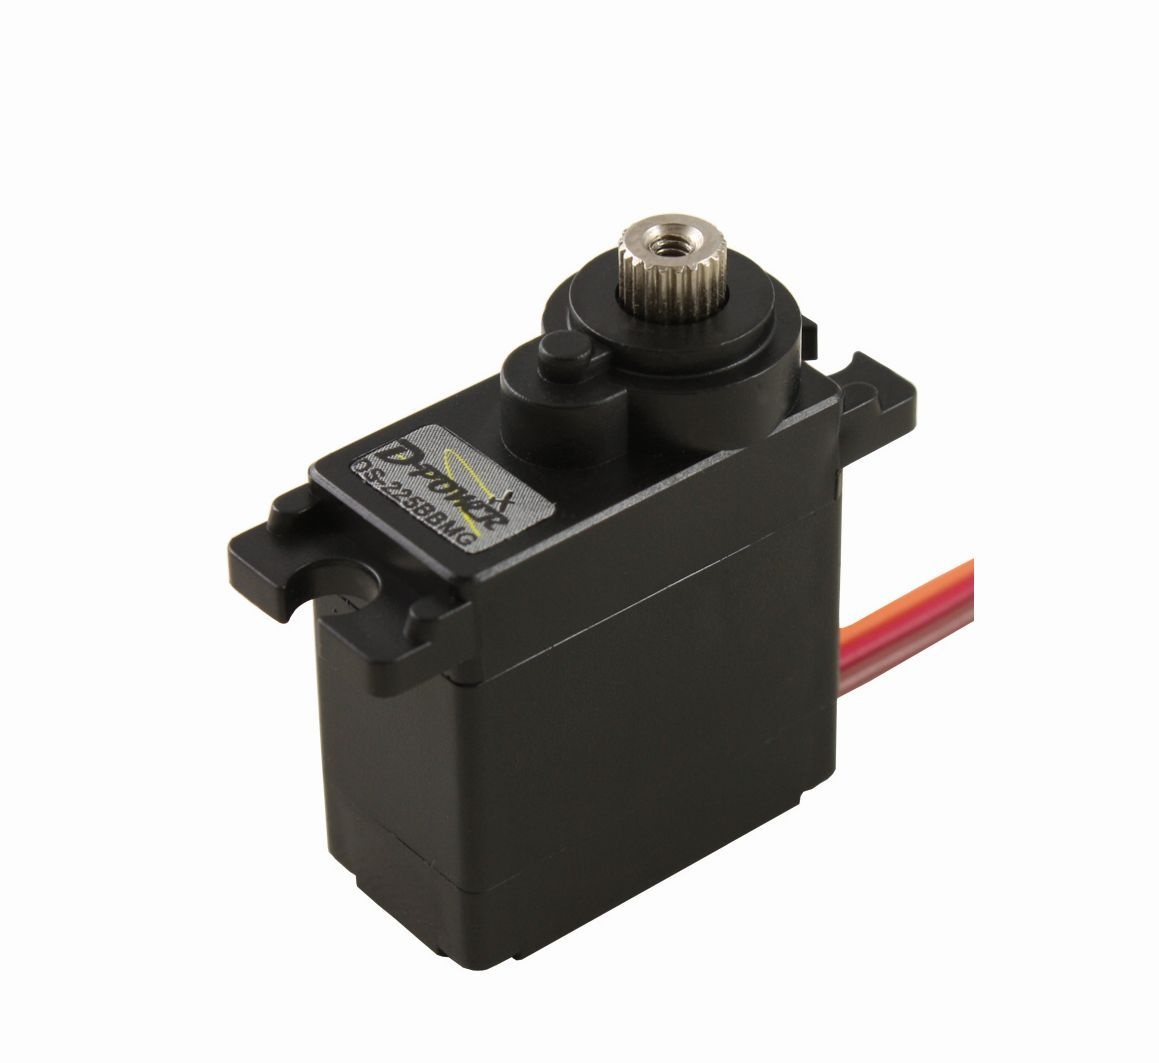 D-Power DS-225BB MG Digital-Servo